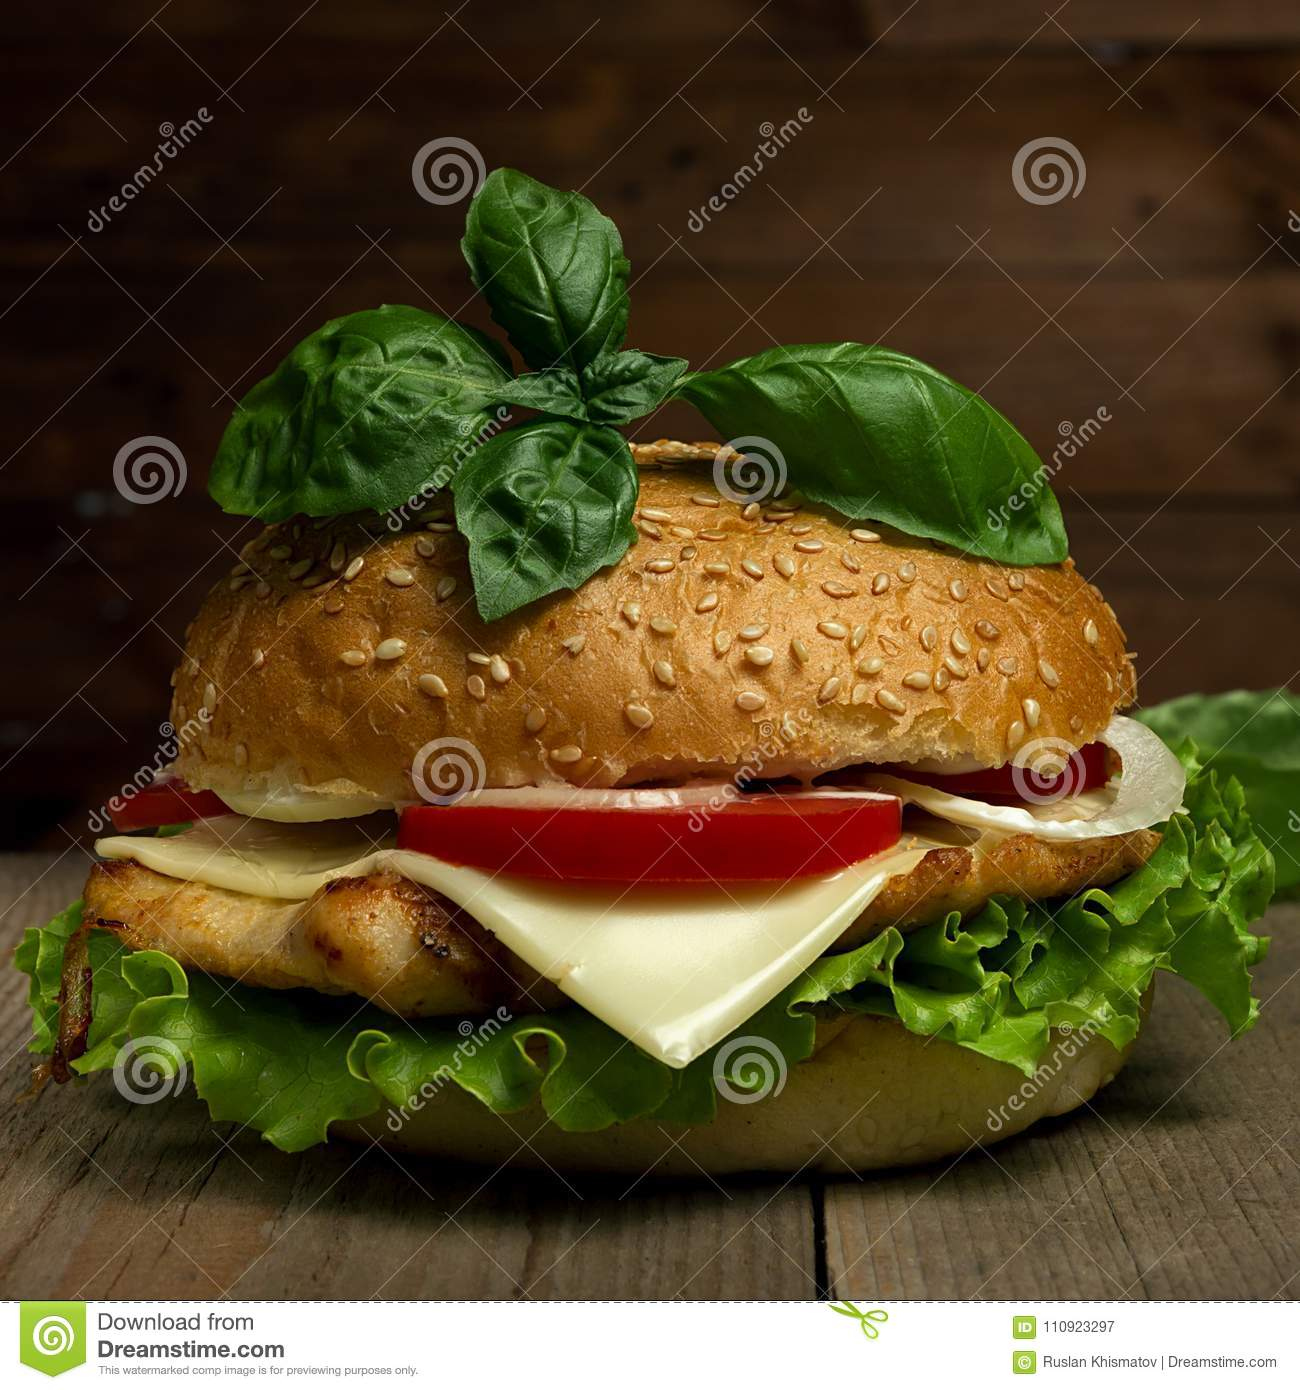 Delicious hamburger with cheese, tomatoes and basil on wooden background. Fastfood meal.